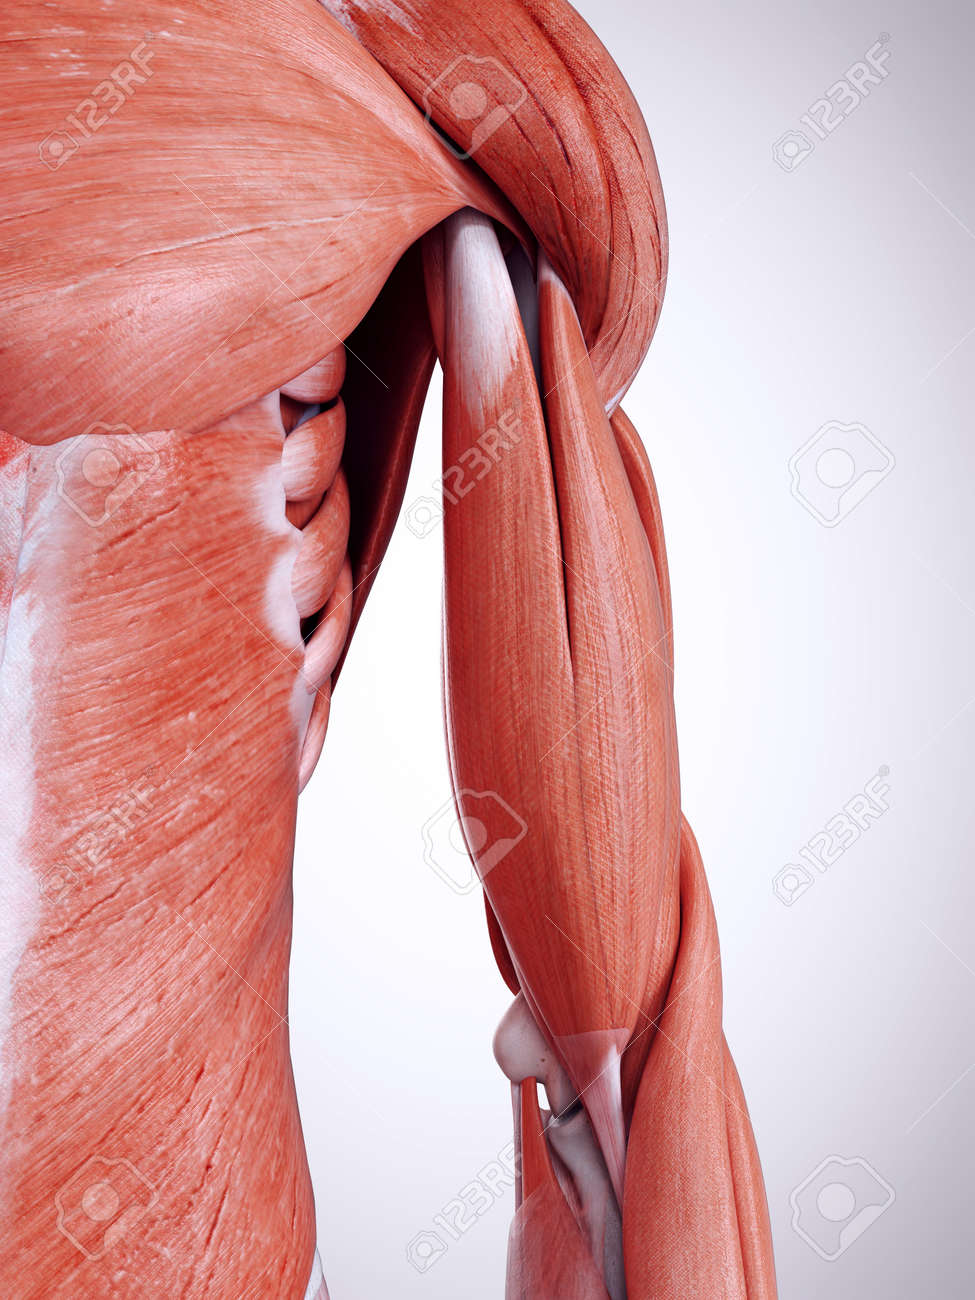 3d Rendered Medically Accurate Illustration Of The Upper Arm Muscles